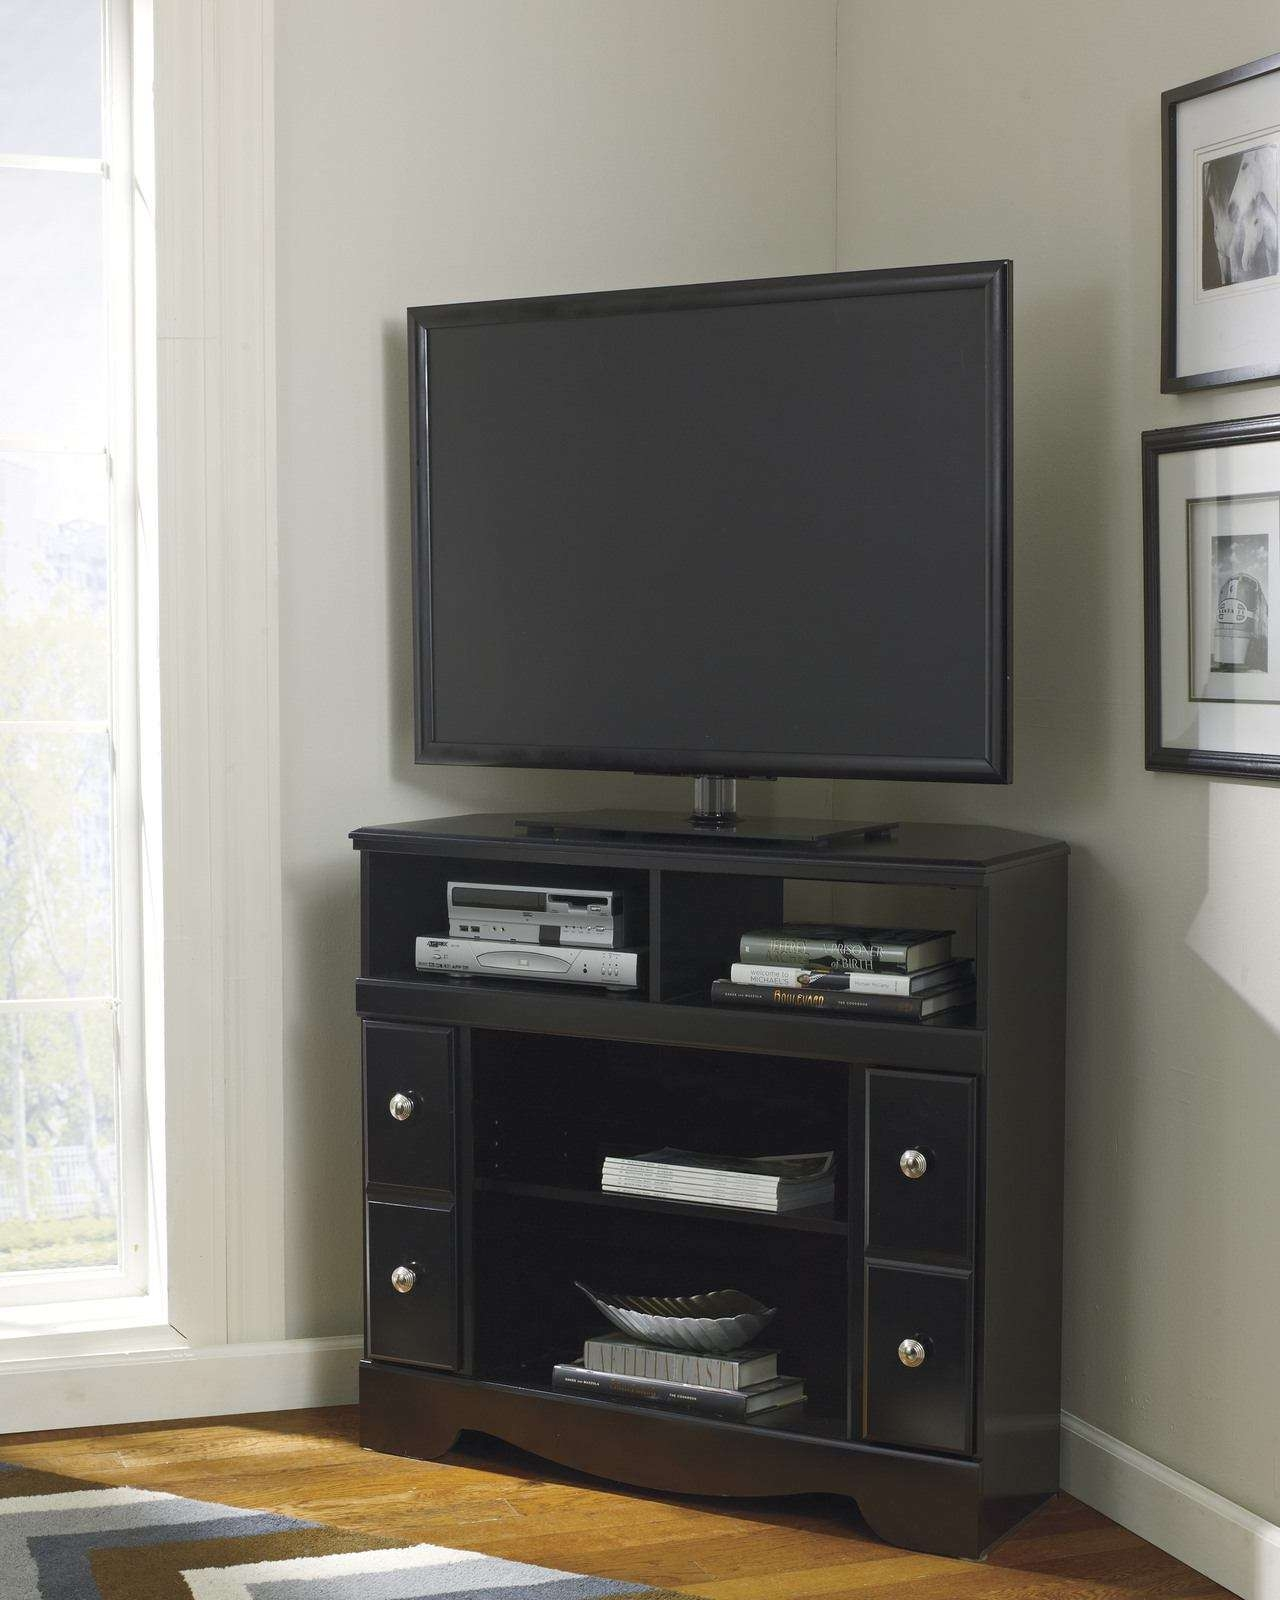 Corner Tv Stand With Fireplace Option In Black W271 12 Inside Cornet Tv Stands (View 12 of 15)